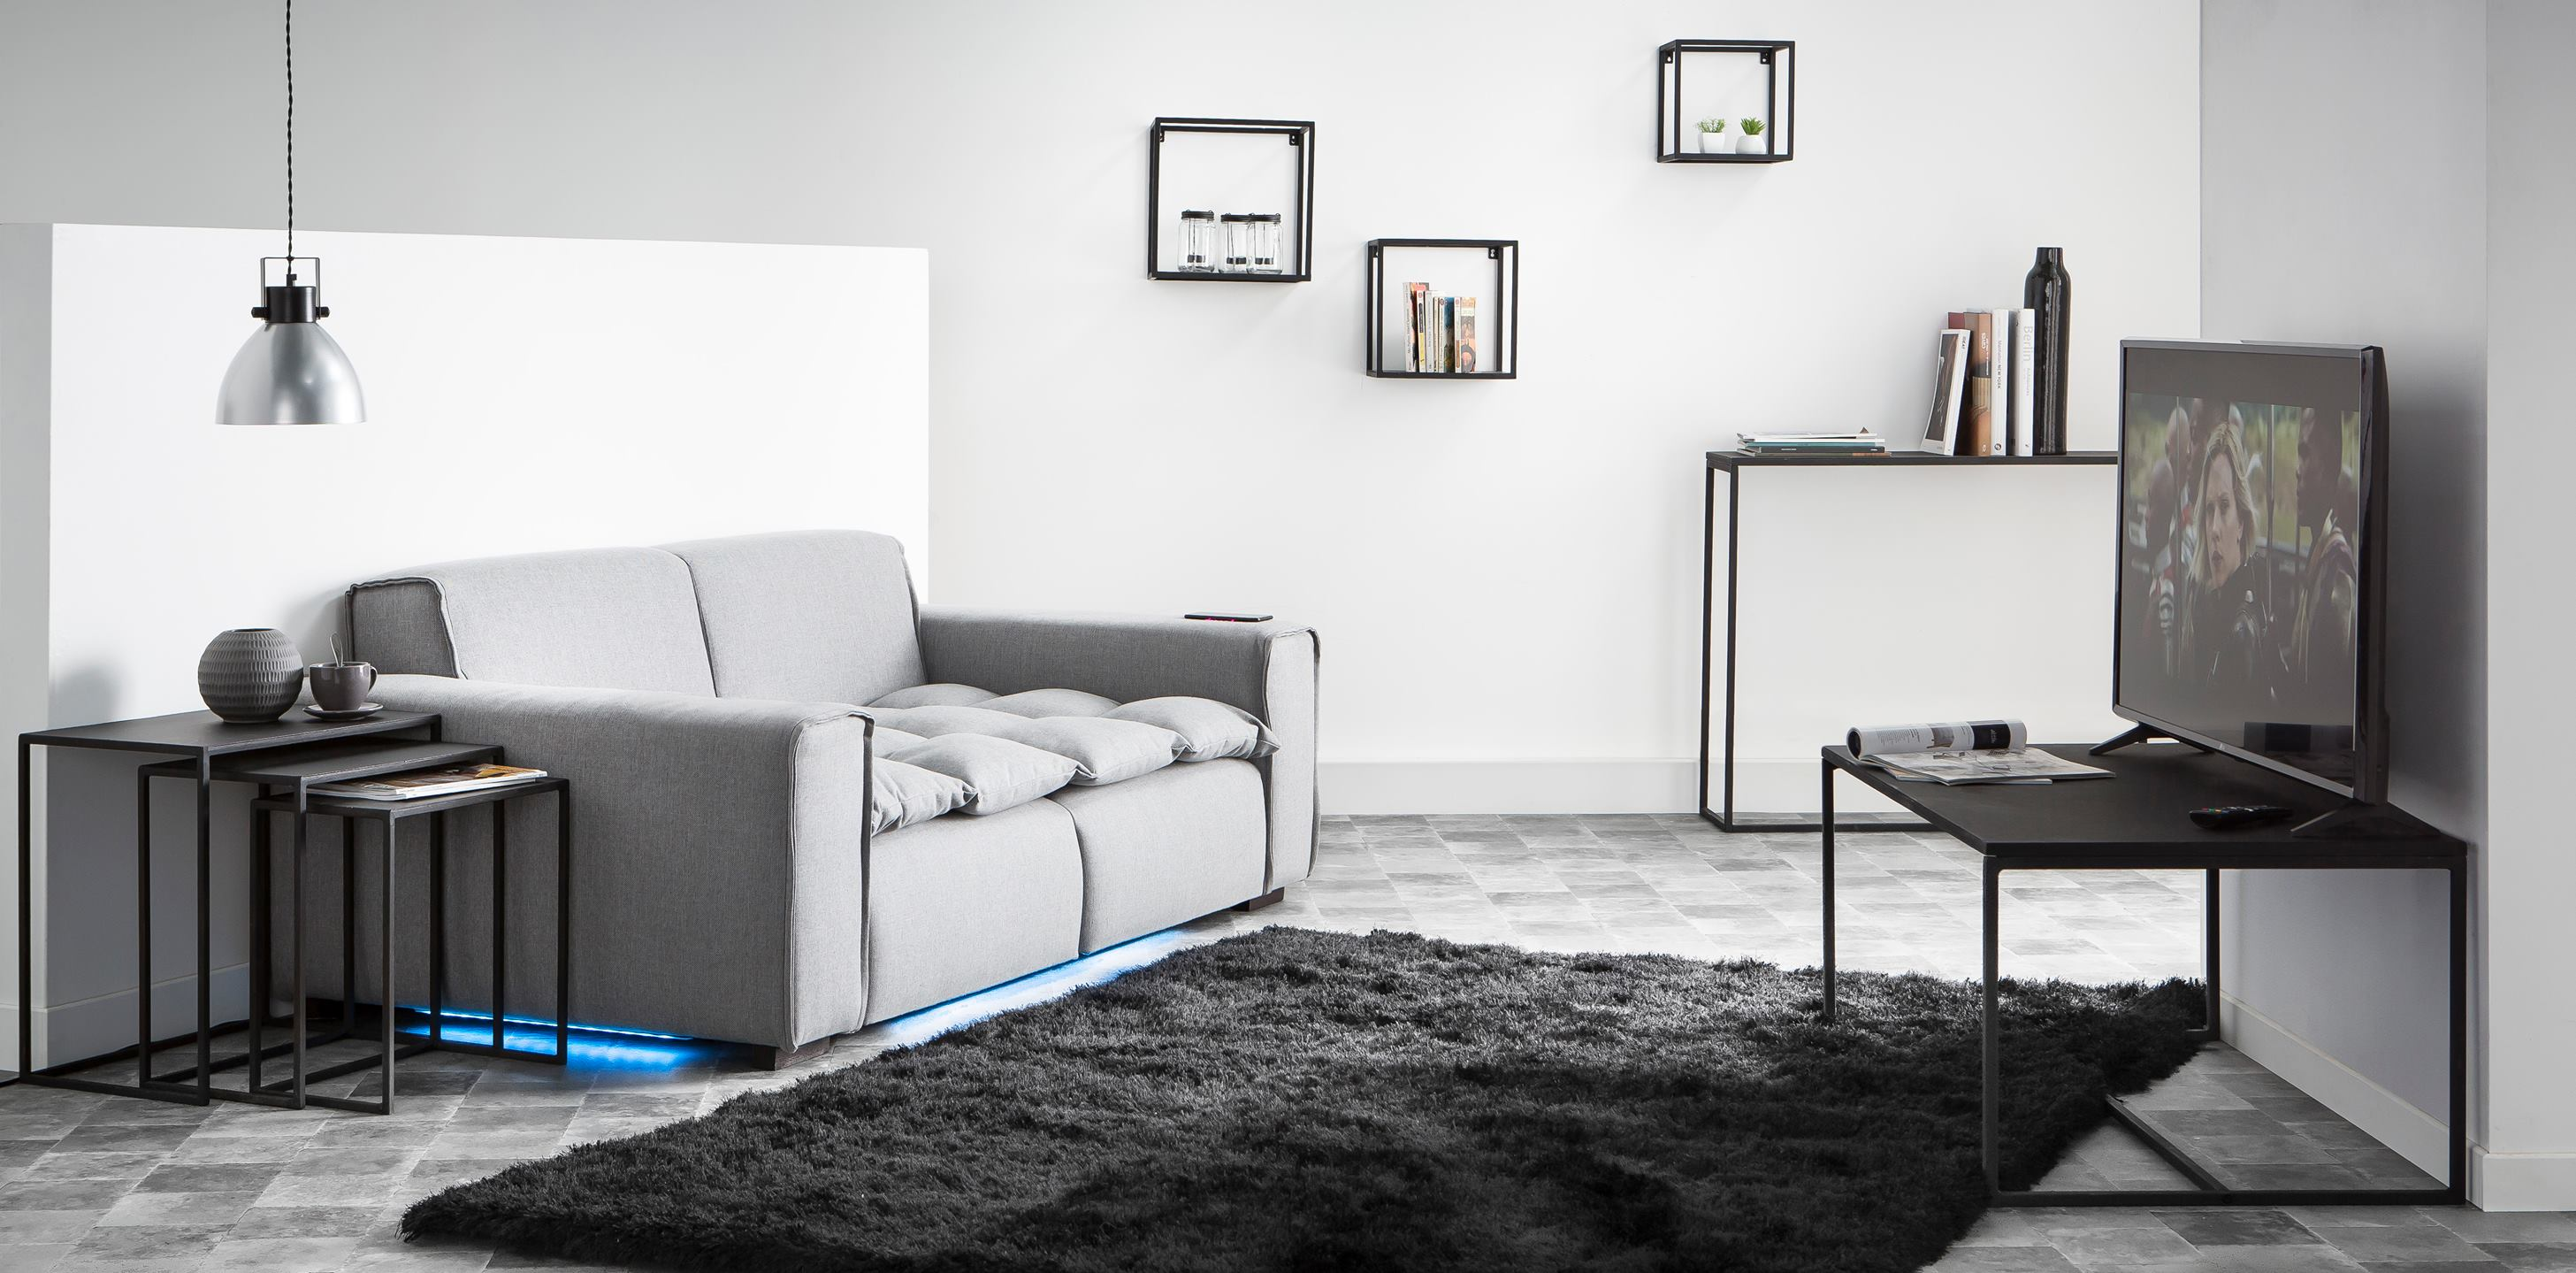 Miliboo introduces Smart Sofa at CES in Las Vegas | Furniture Today